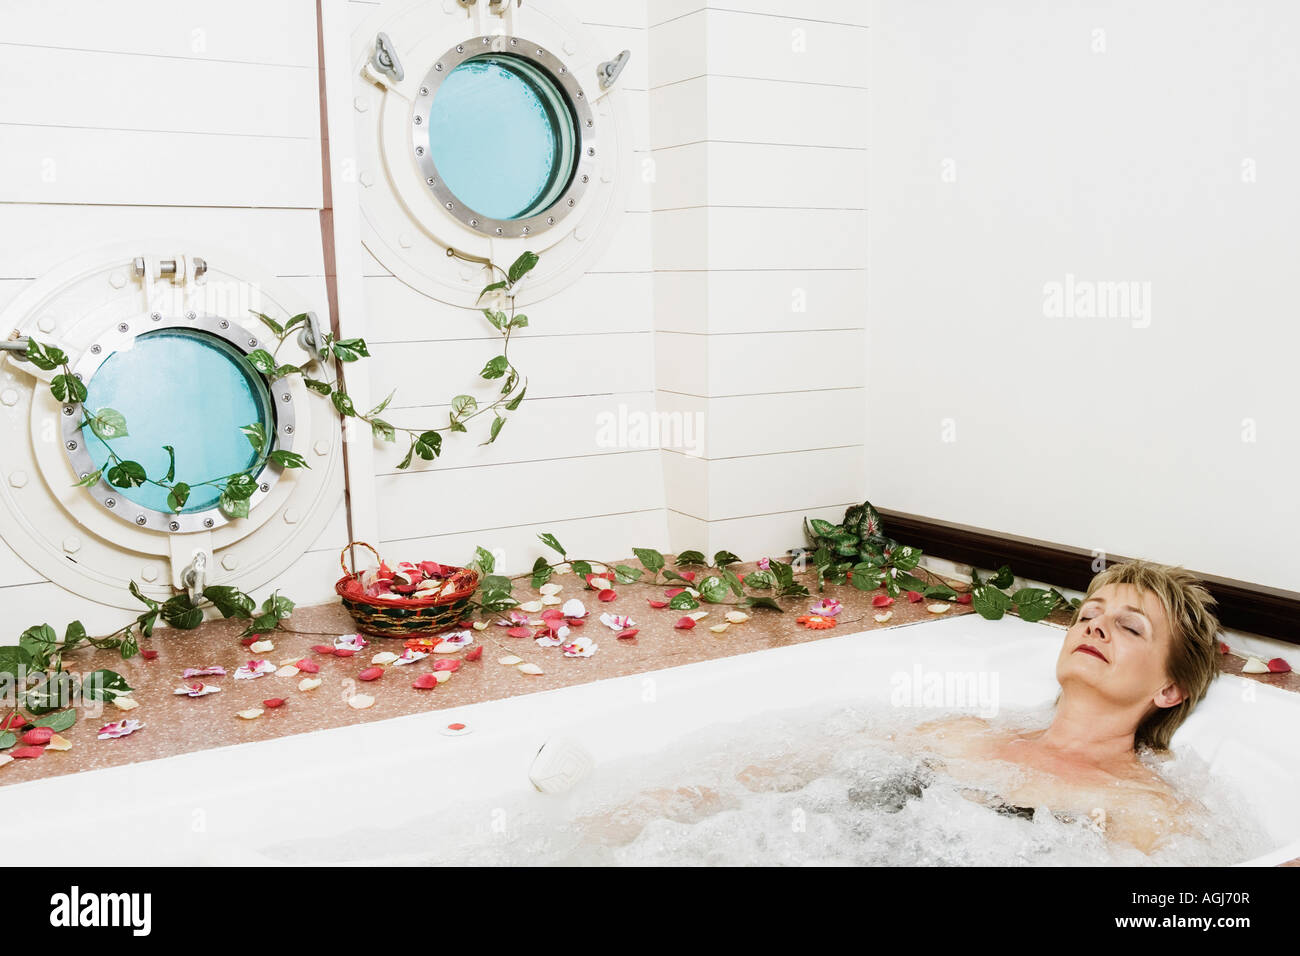 Mature woman in a bathtub - Stock Image